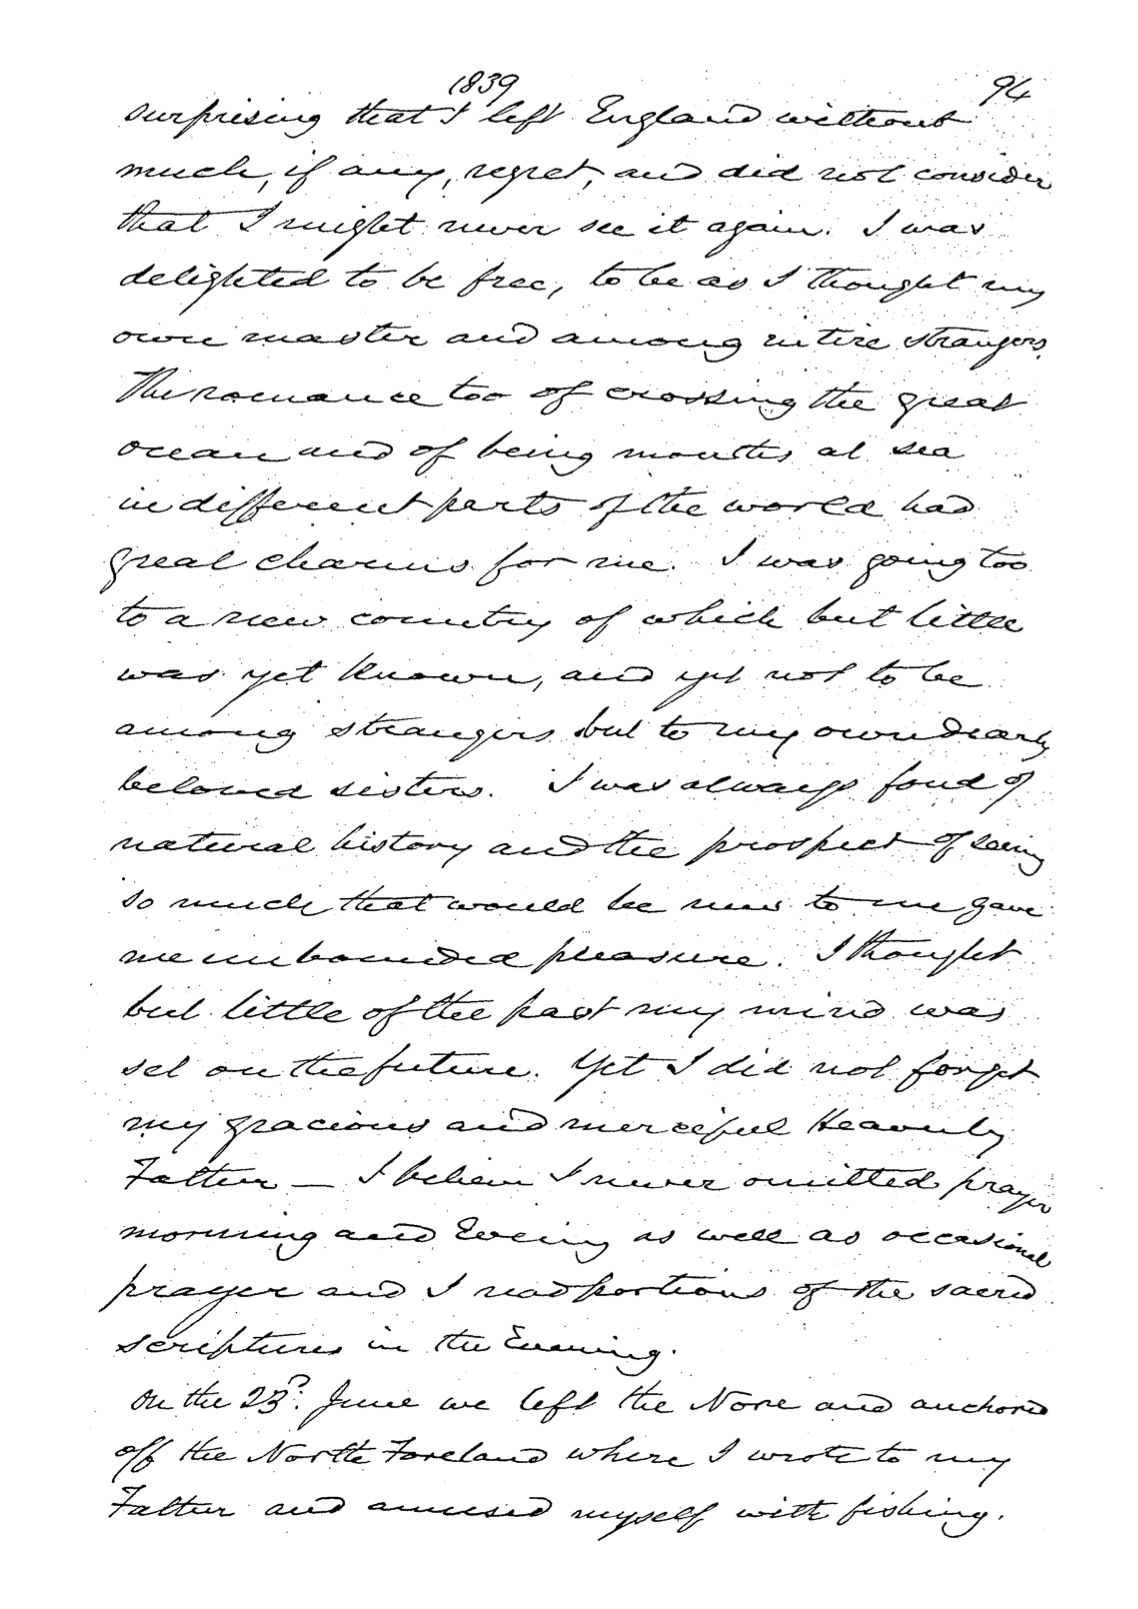 Chauncy PAC-10024086 memoirs page 116 of 220 pages